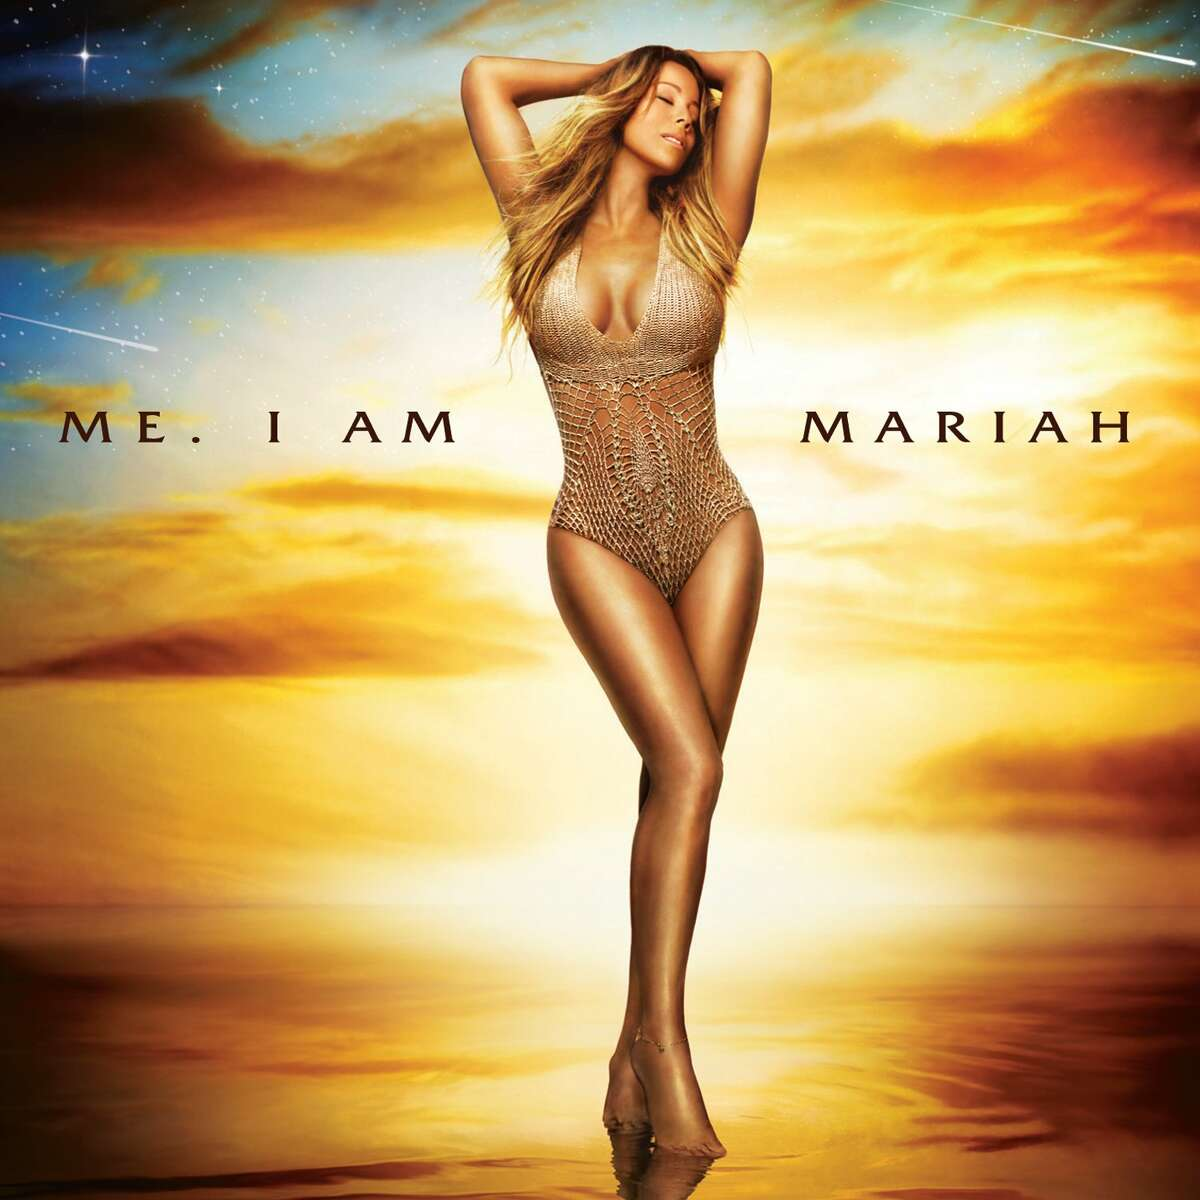 Cover art for Me. I Am Mariah... The Elusive Chanteuse from Mariah Carey.